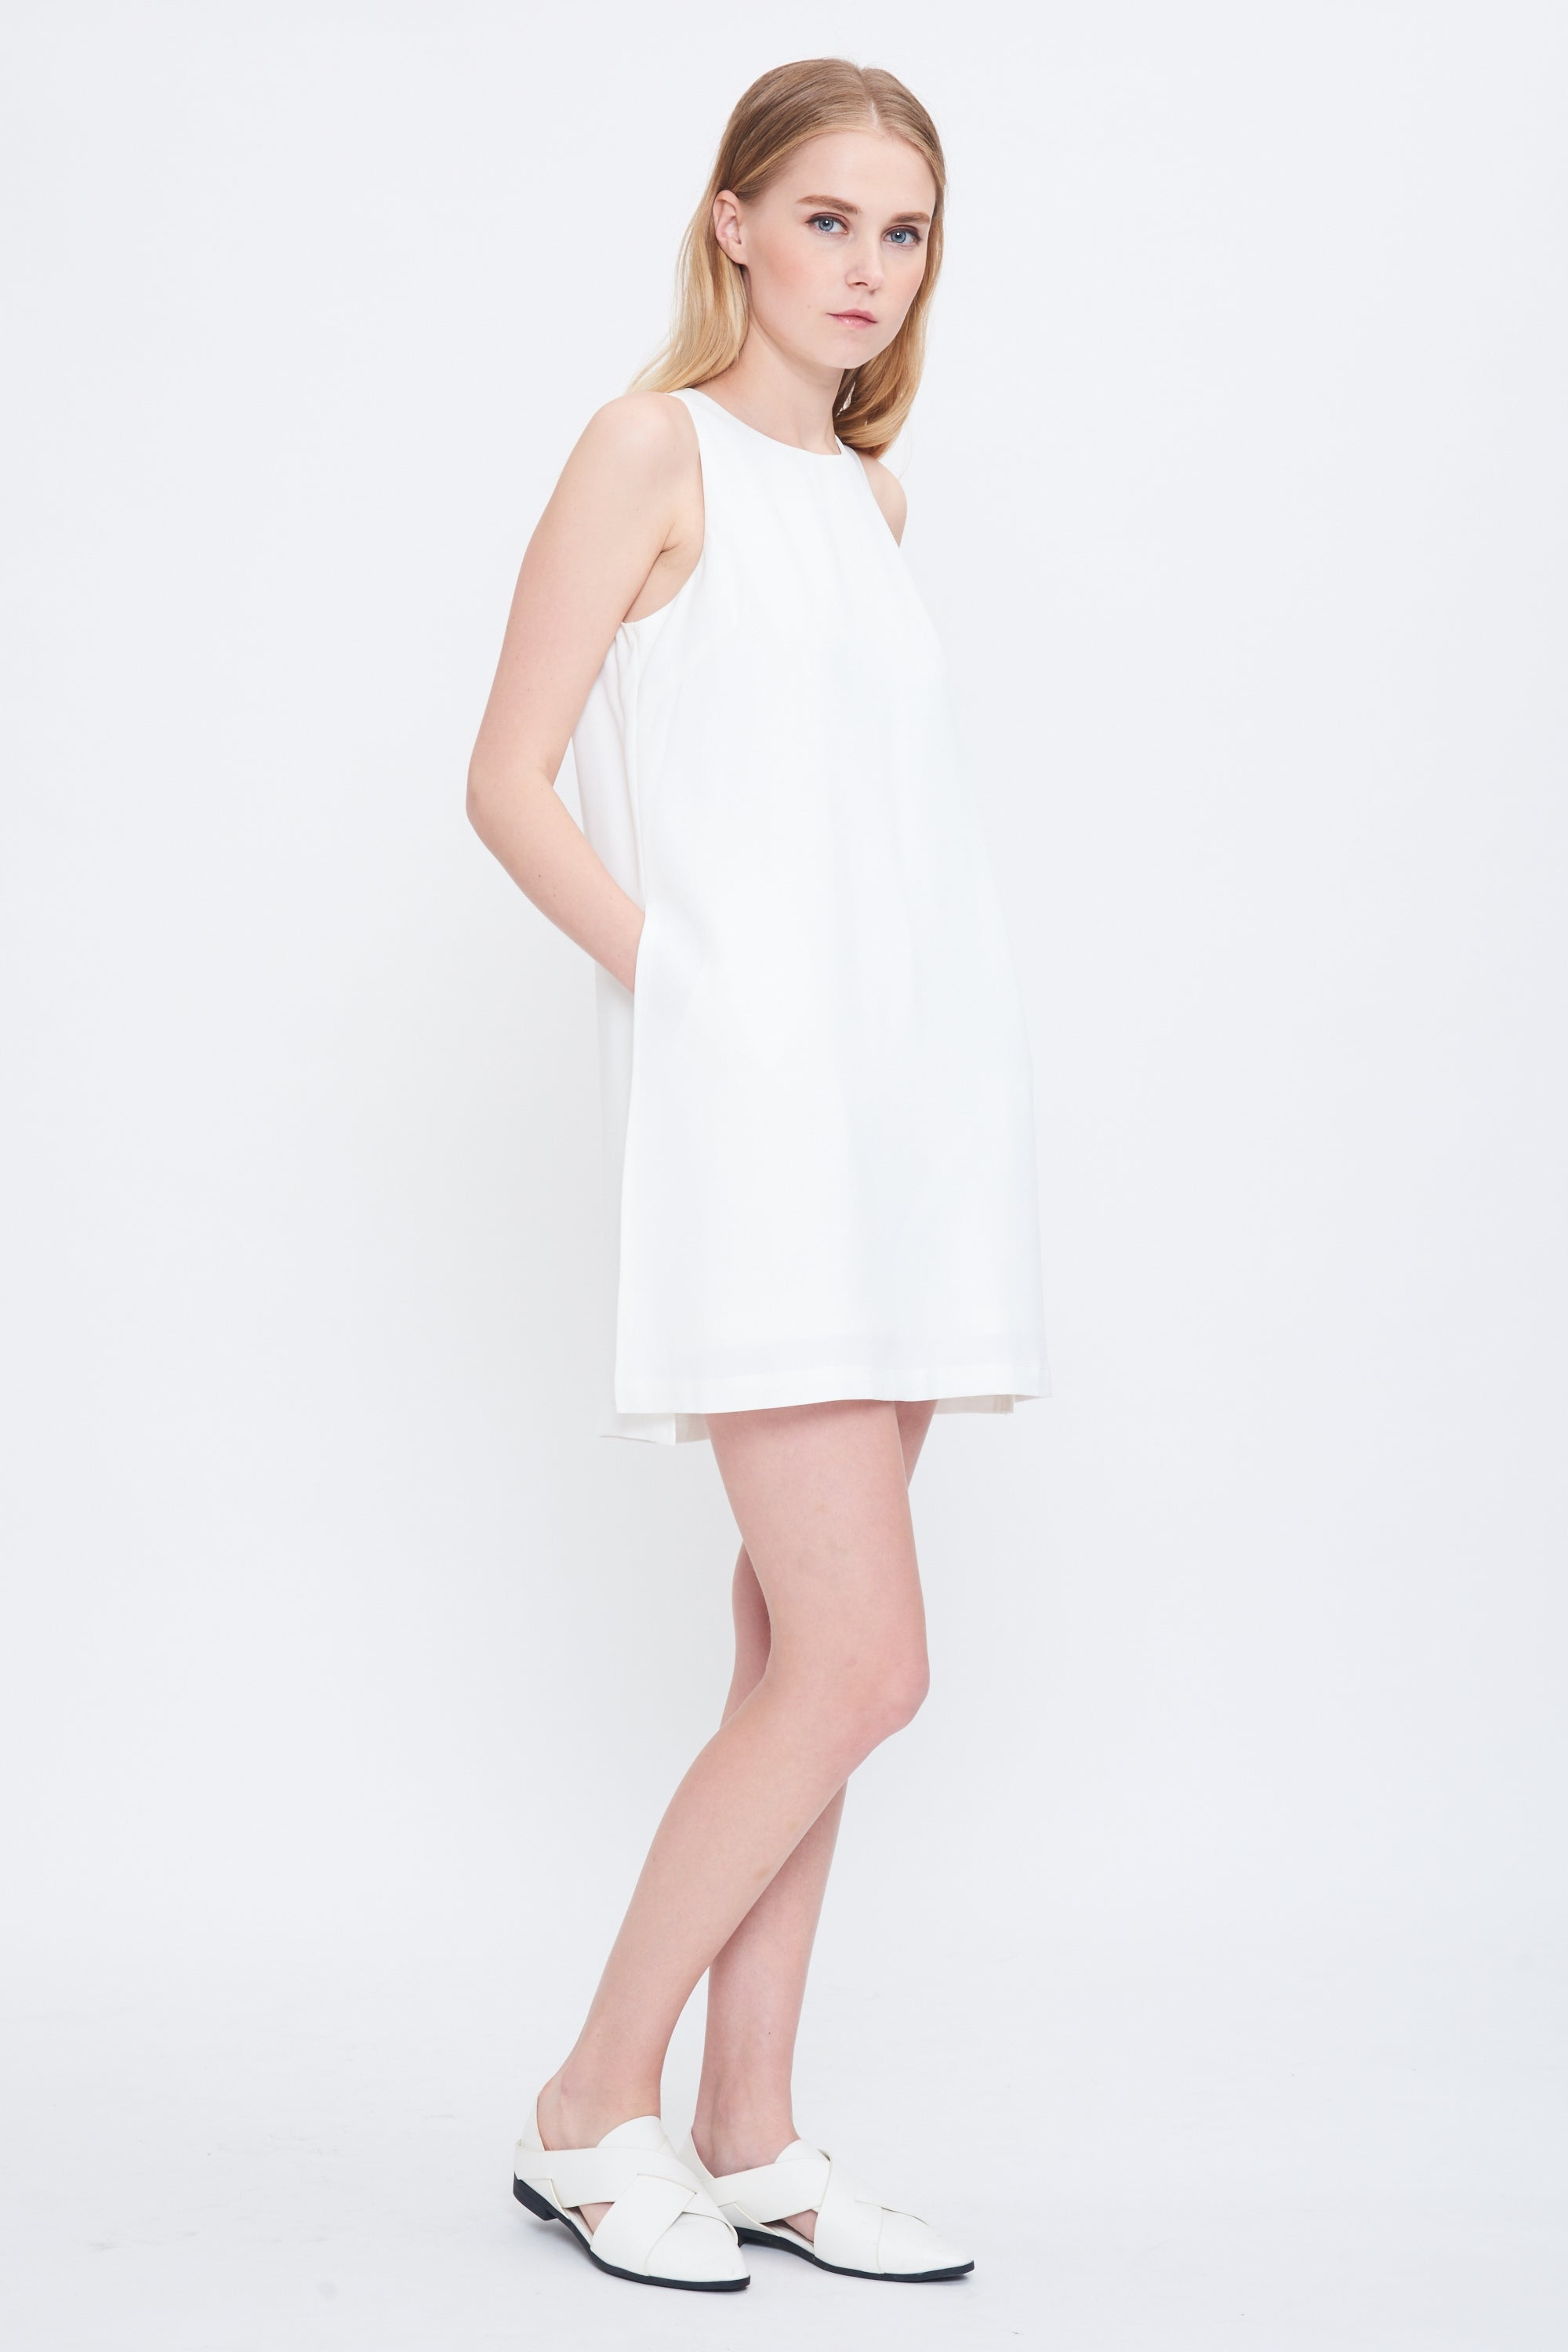 Playsuit Dress In White